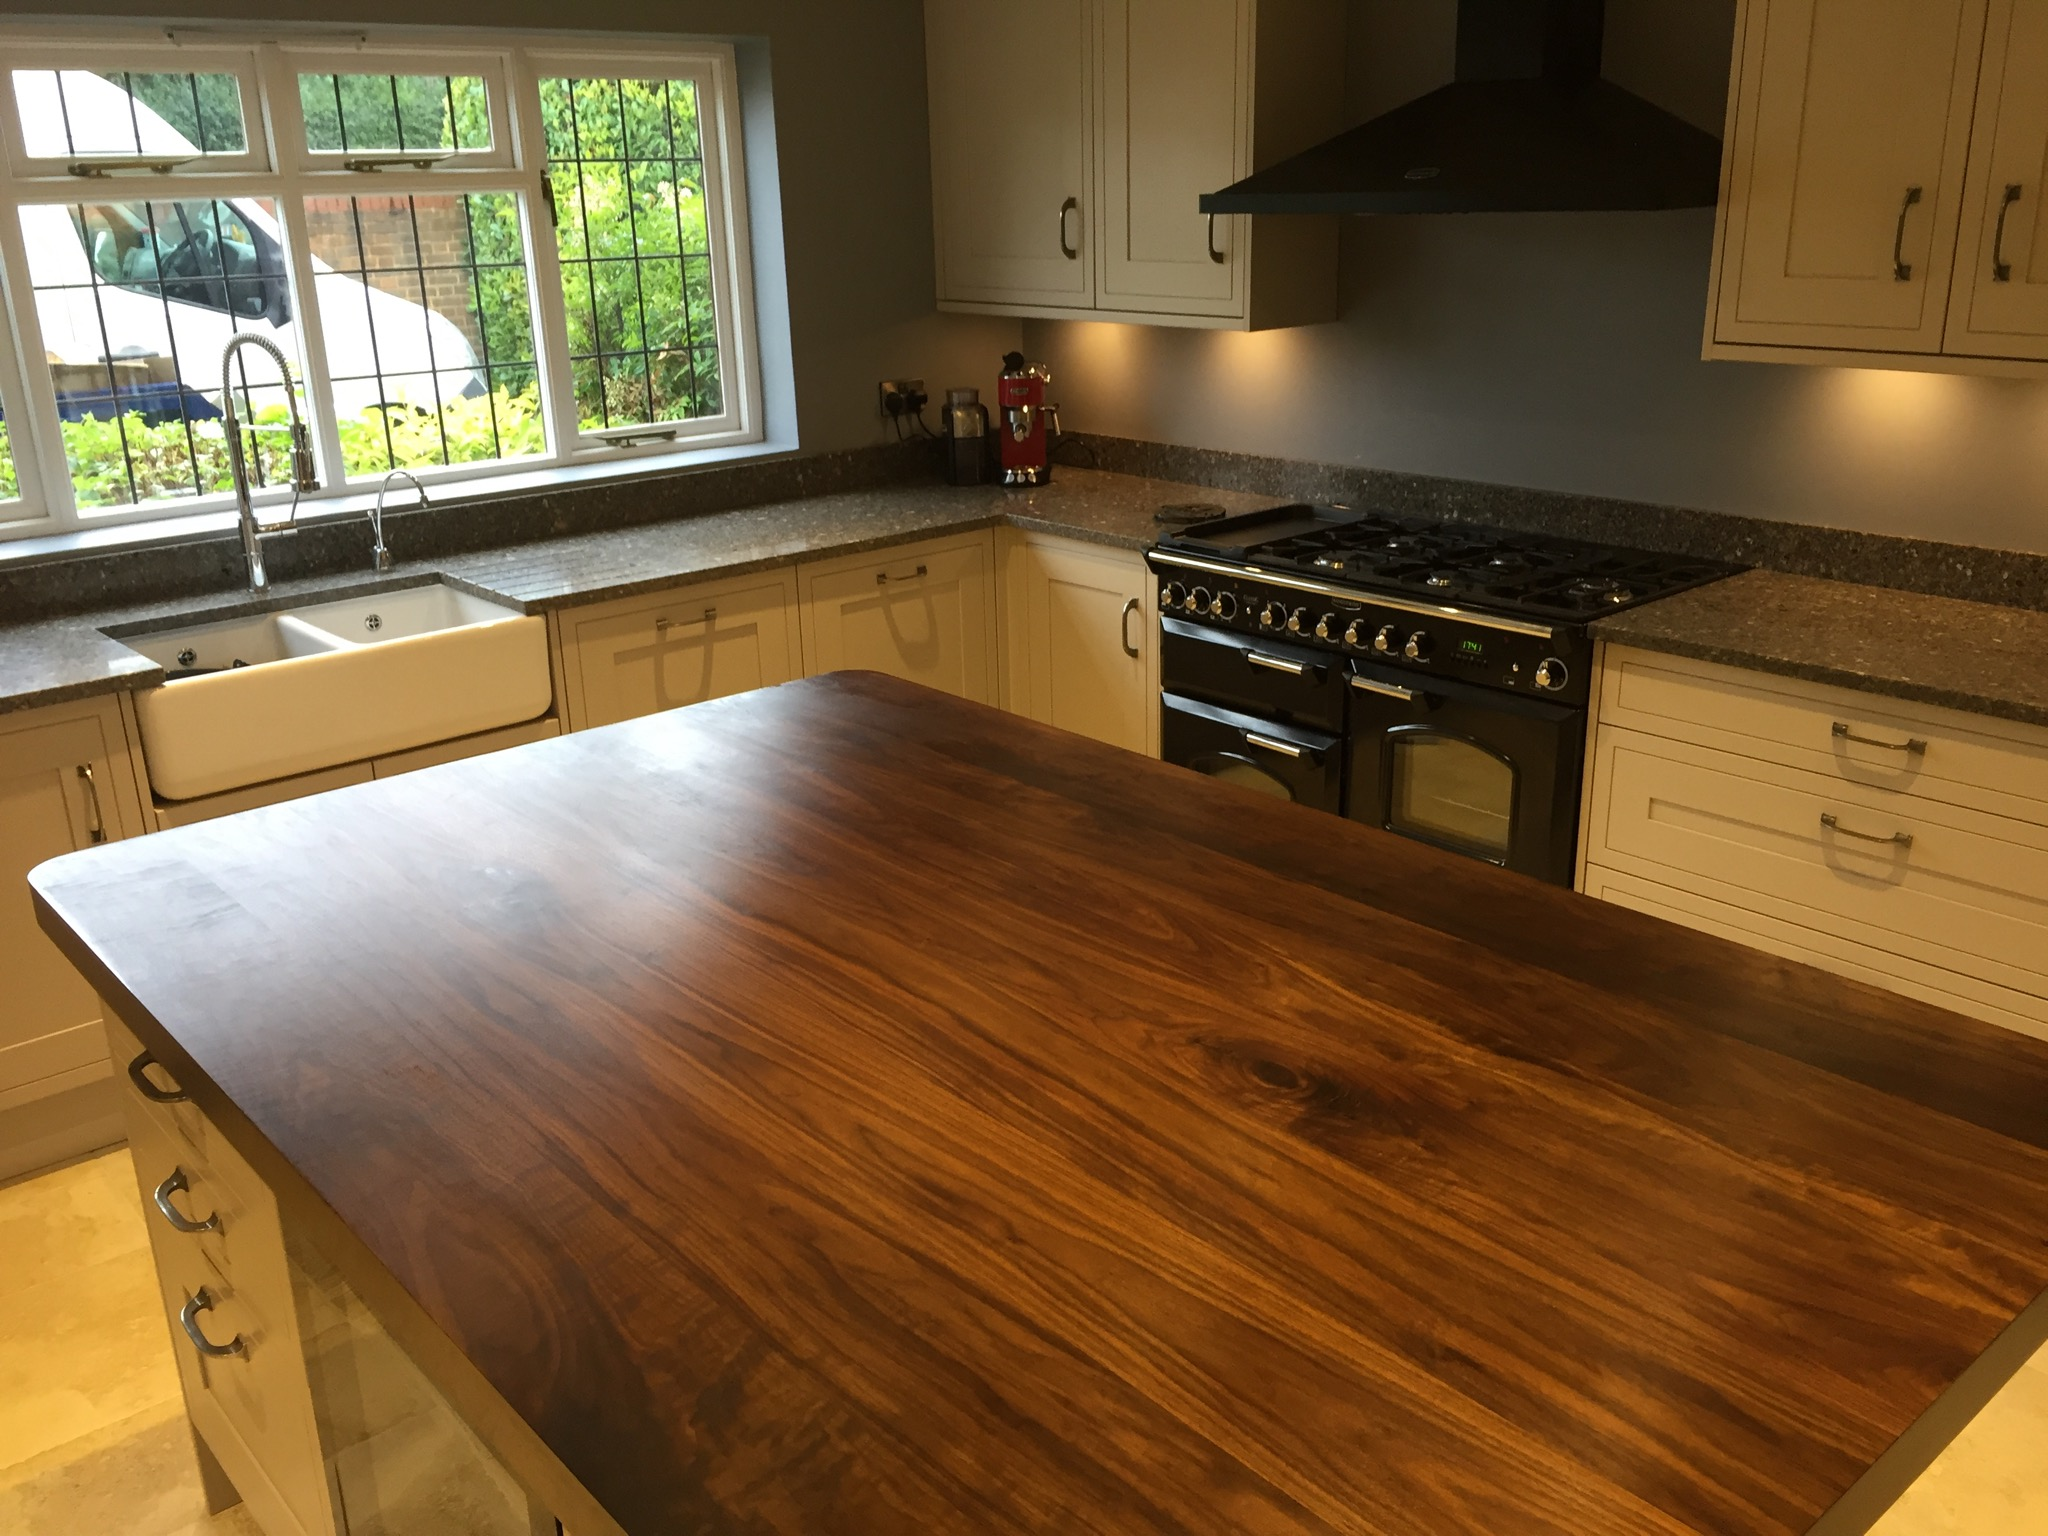 Roktops timber worktop